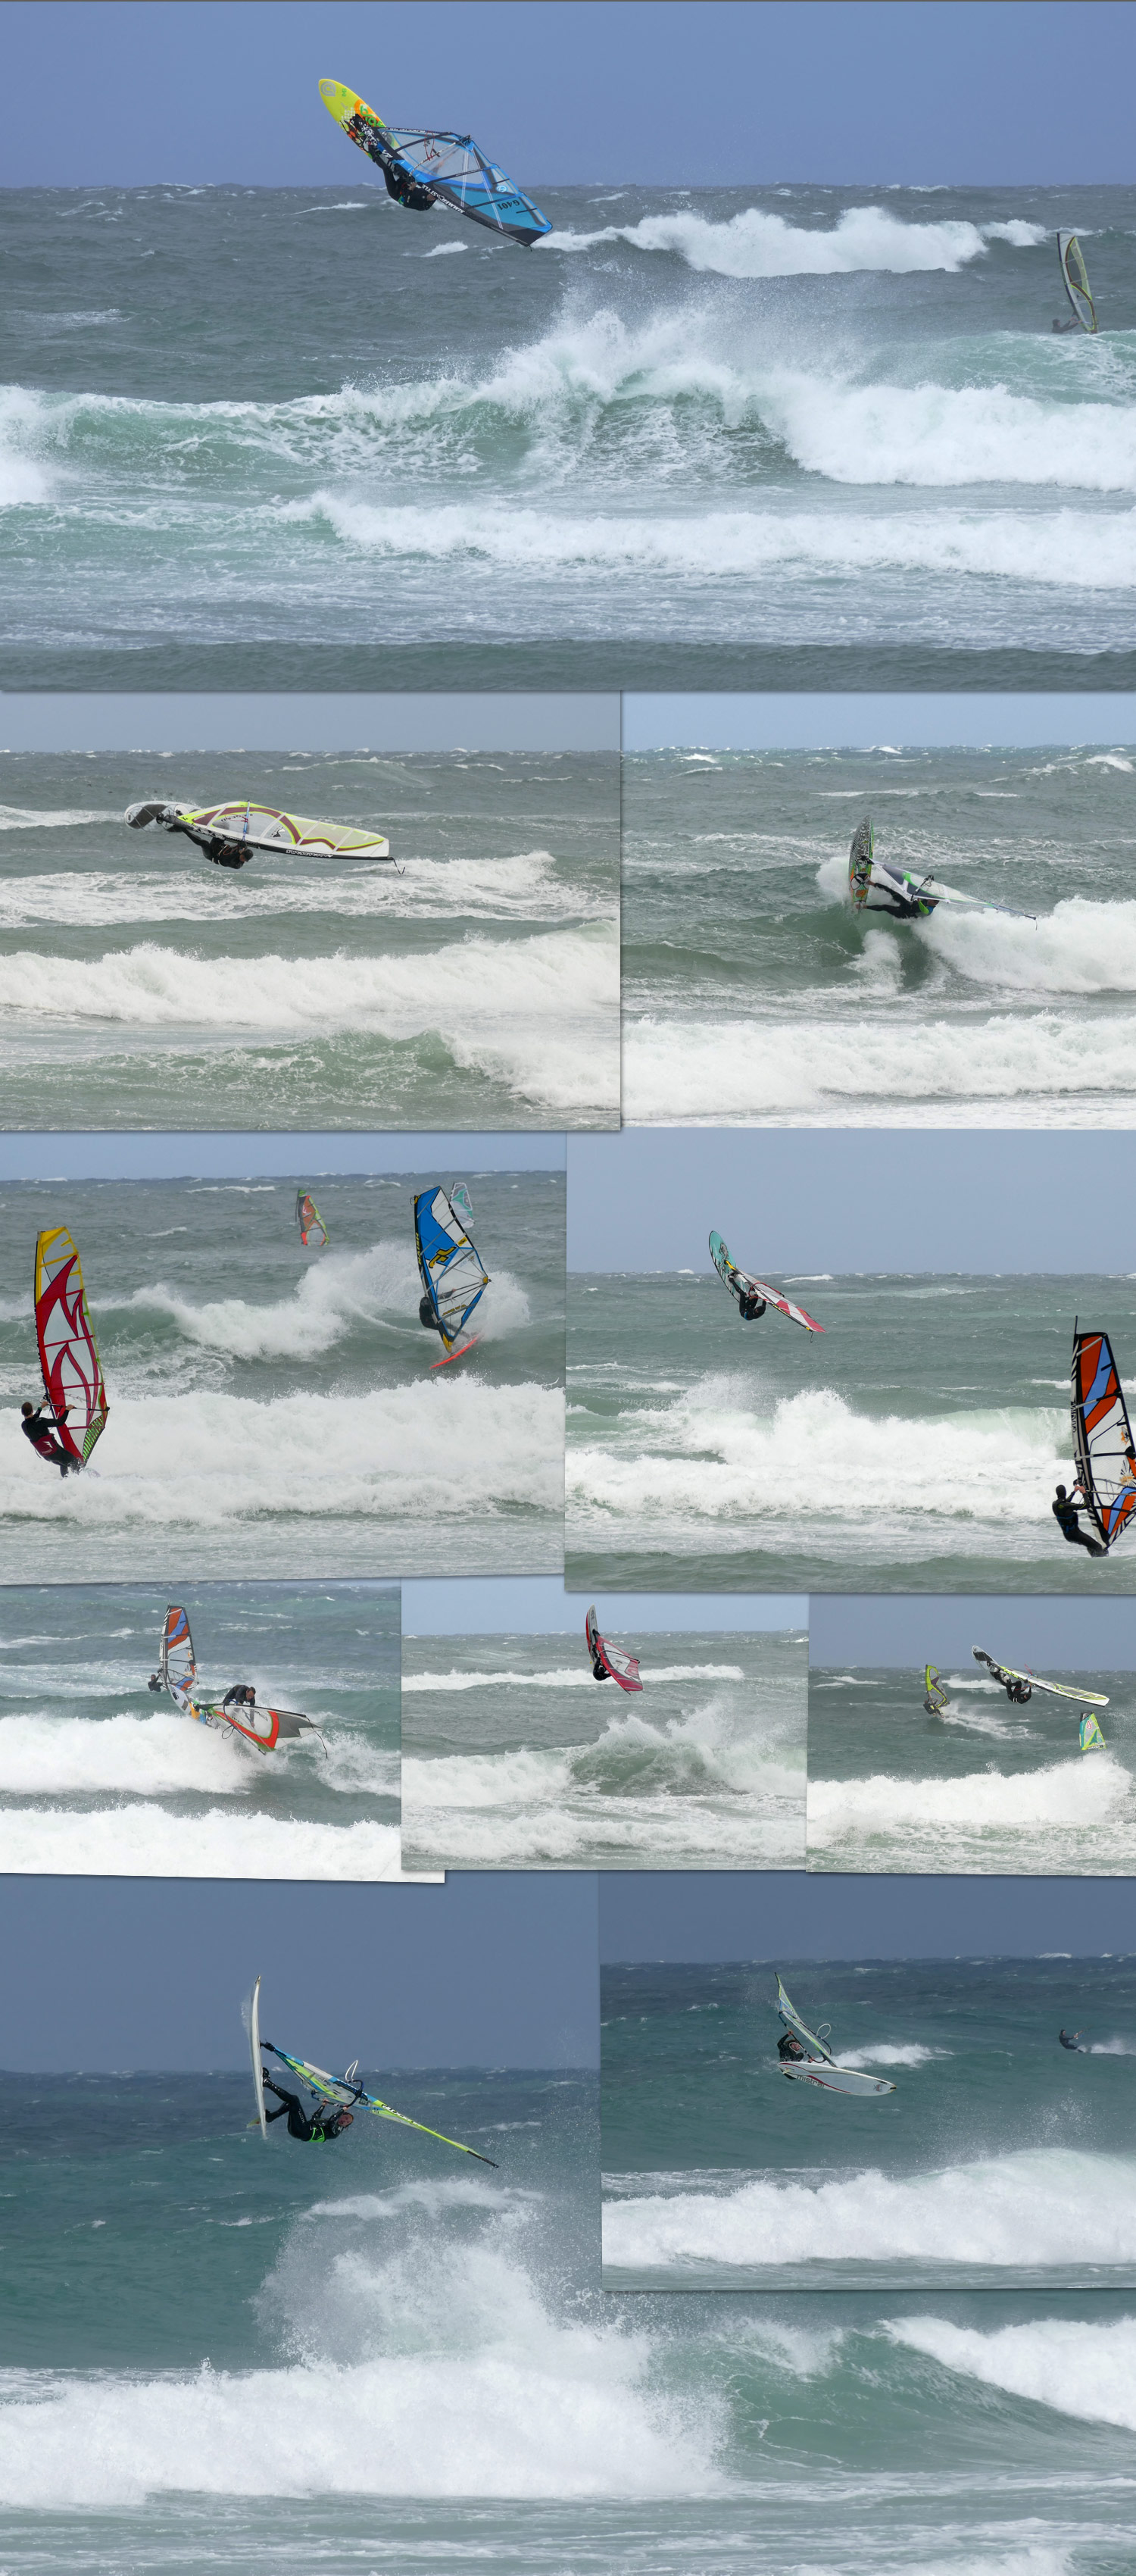 windsurfen in hanstholm 24 juni 2015. Black Bedroom Furniture Sets. Home Design Ideas